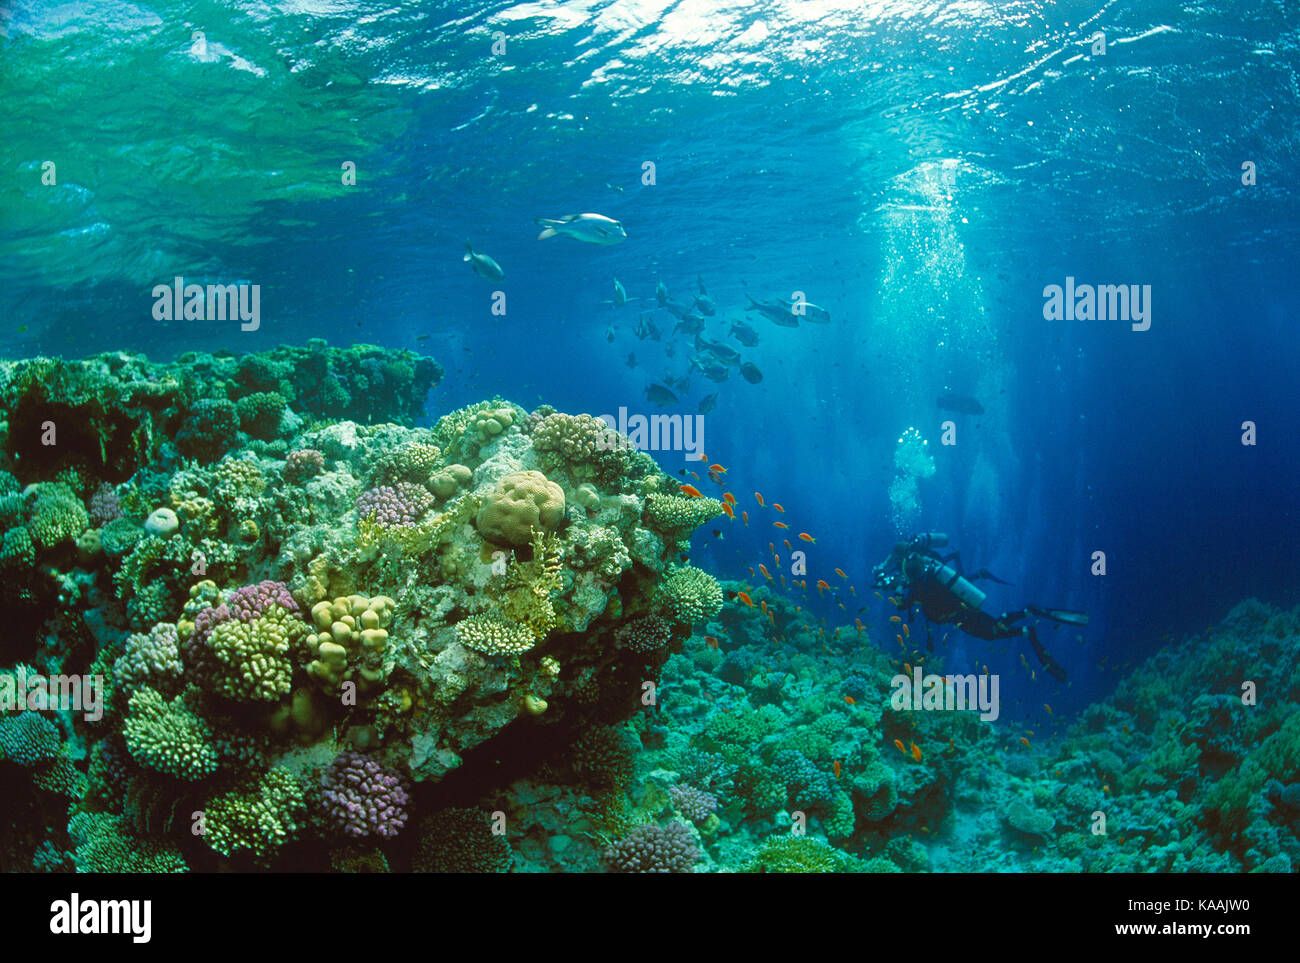 Egypt. Red Sea. Scuba diving. Diver over coral reef. - Stock Image